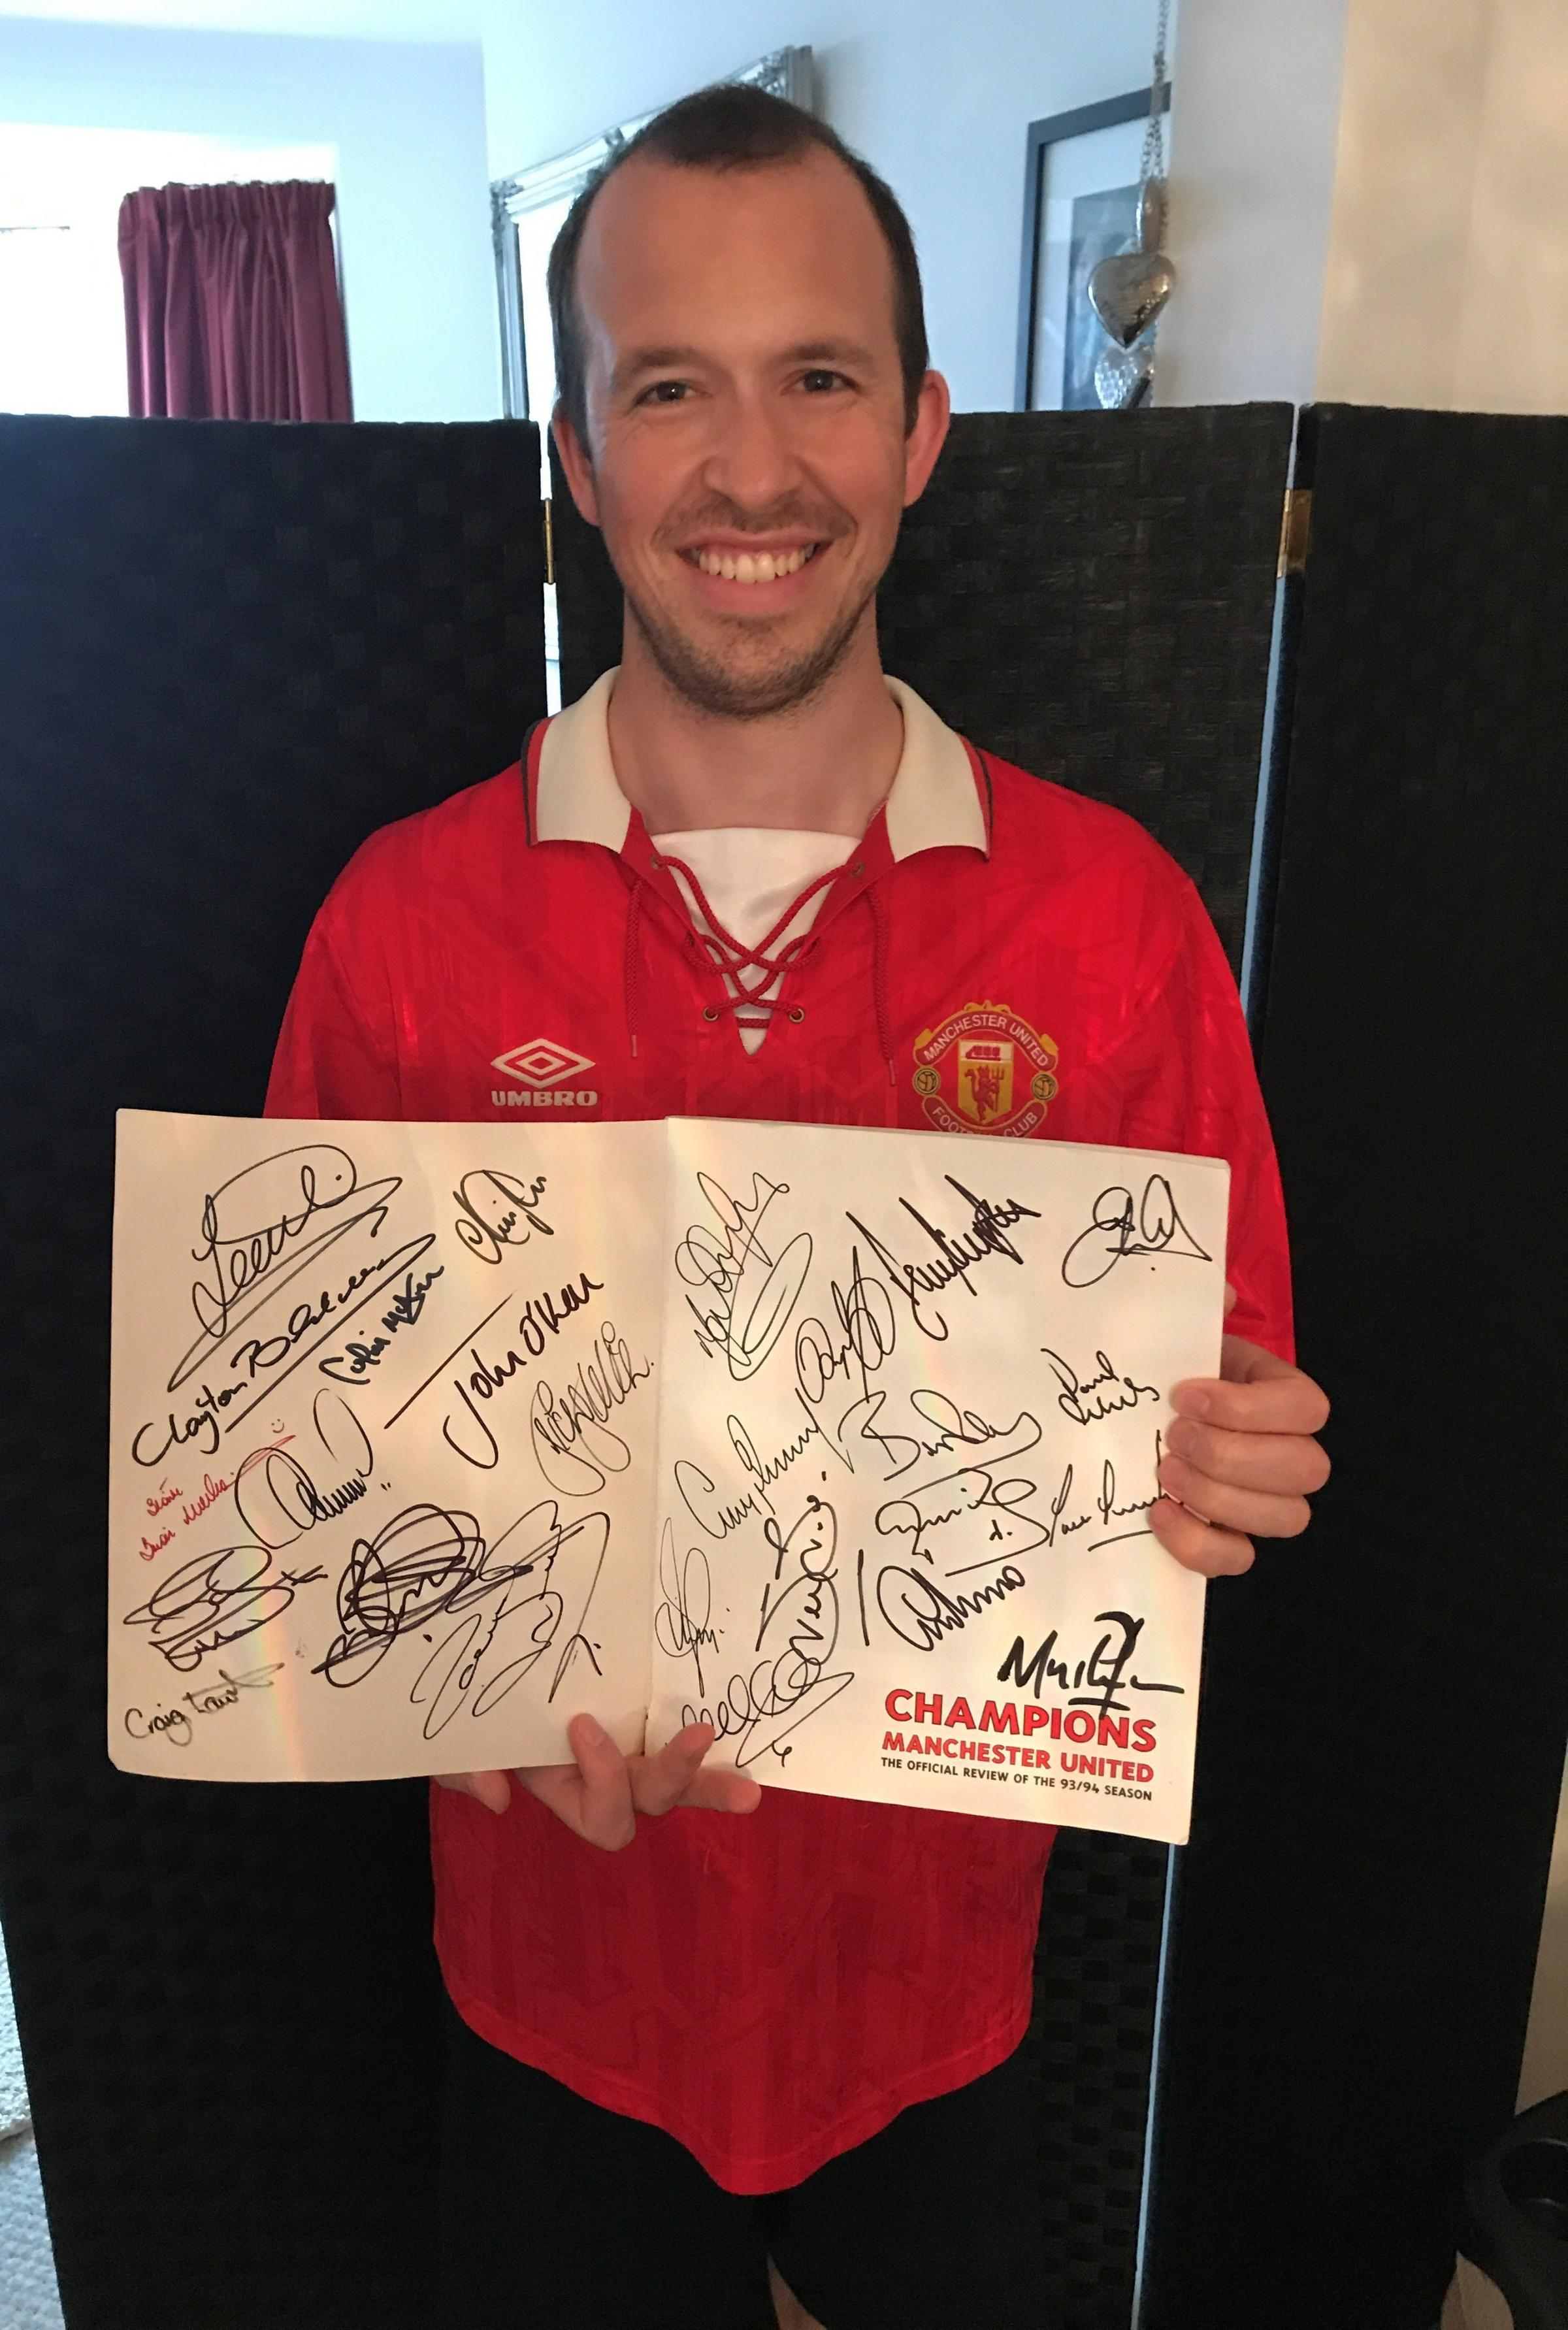 Dan Poole is collecting signatures from the 1993/1994 Manchester United team to raise money for the British Heart Foundation